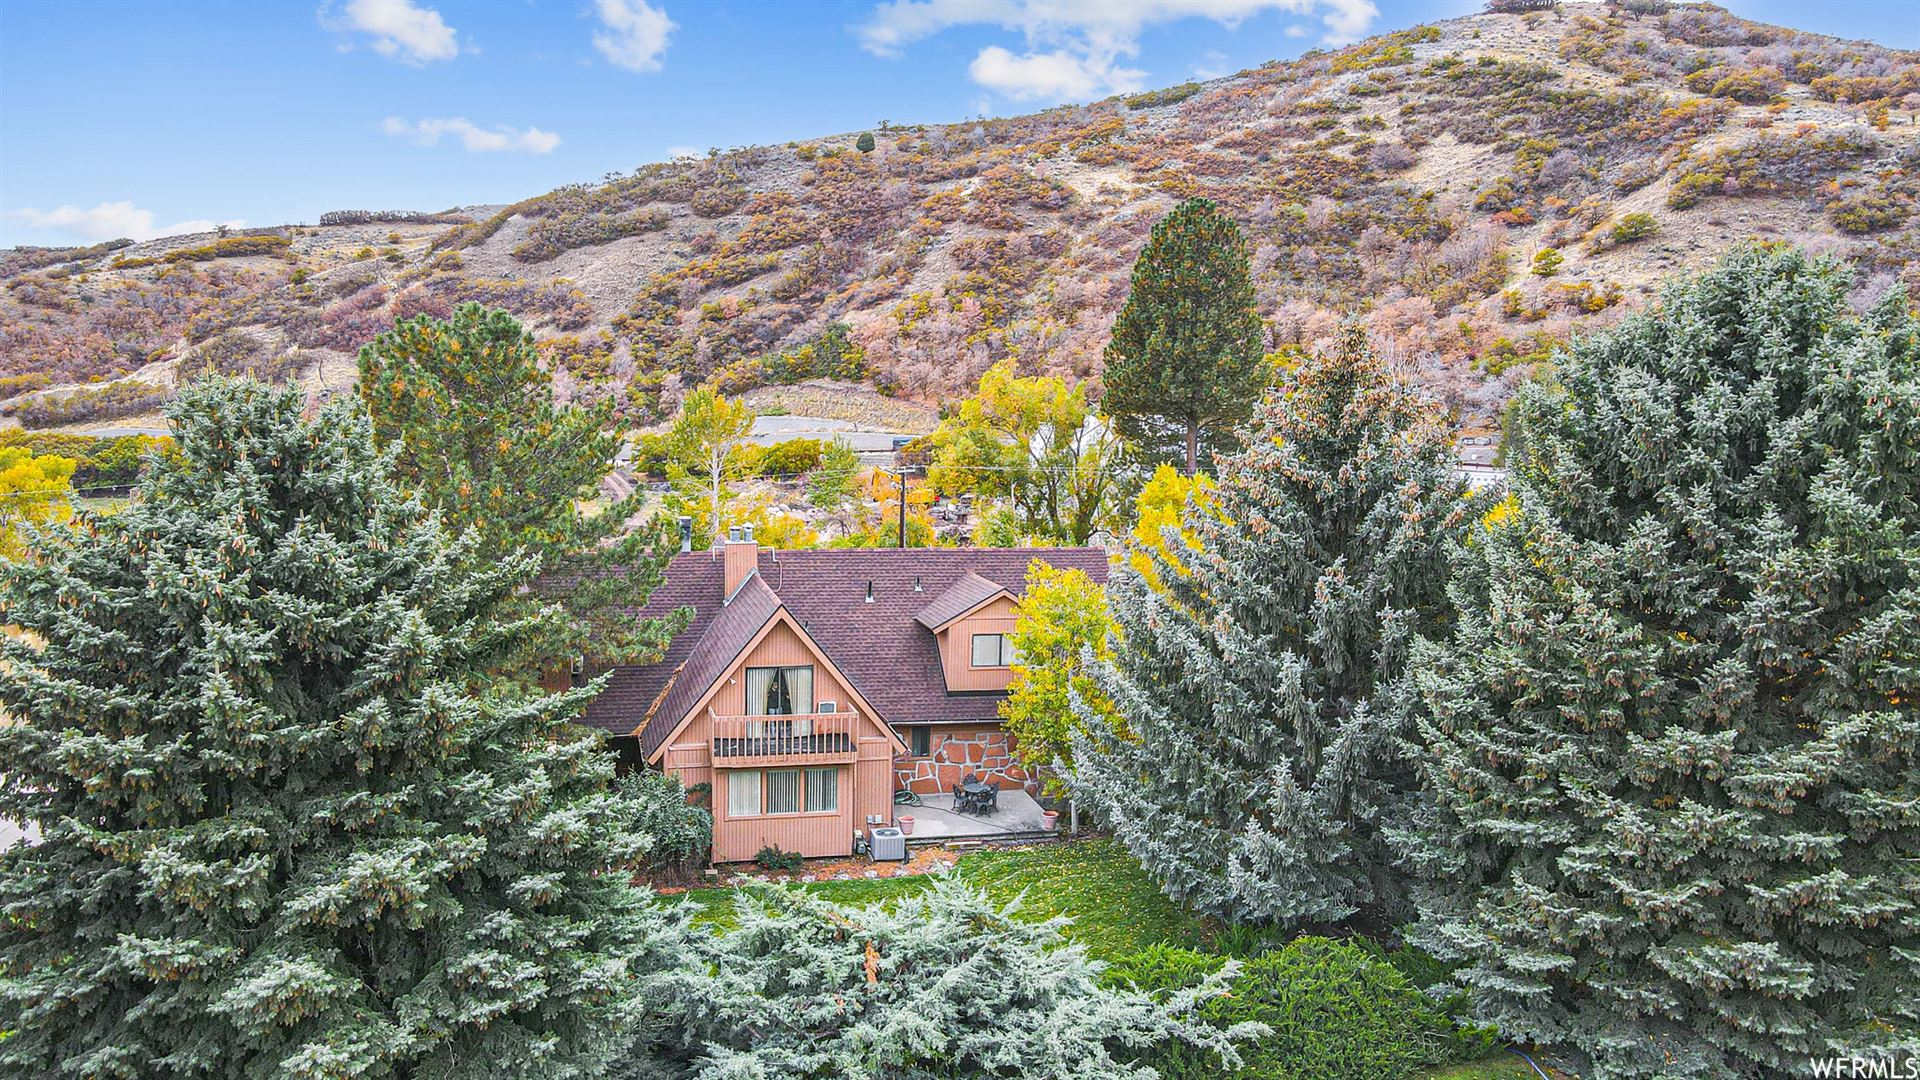 Photo of 1836 N FORT CANYON RD W, Alpine, UT 84004 (MLS # 1774144)